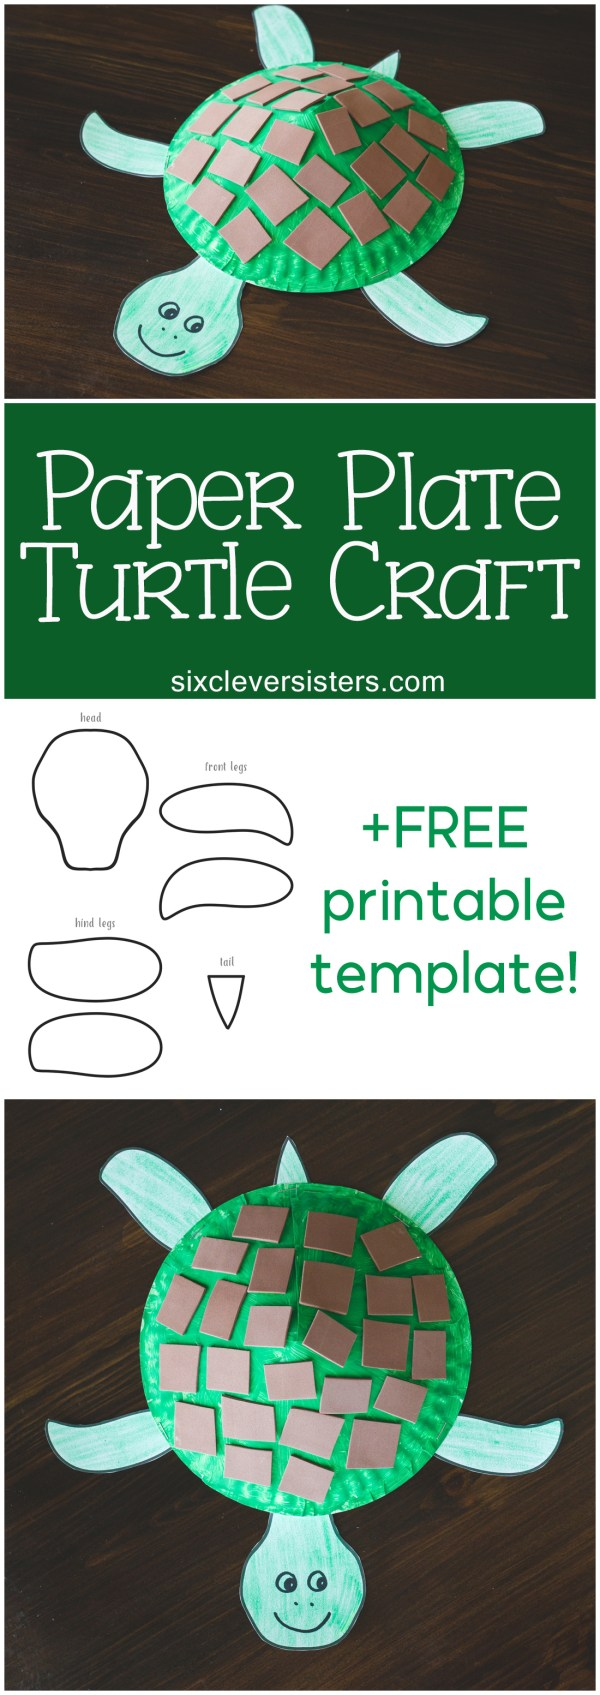 Paper Plate Craft   Turtle Craft   Paper Plate Turtle Craft   Kids Craft   Printable Kids Craft   Free Printable   Directions and free printable template for this fun Paper Plate Turtle Craft available on the Six Clever Sisters blog!